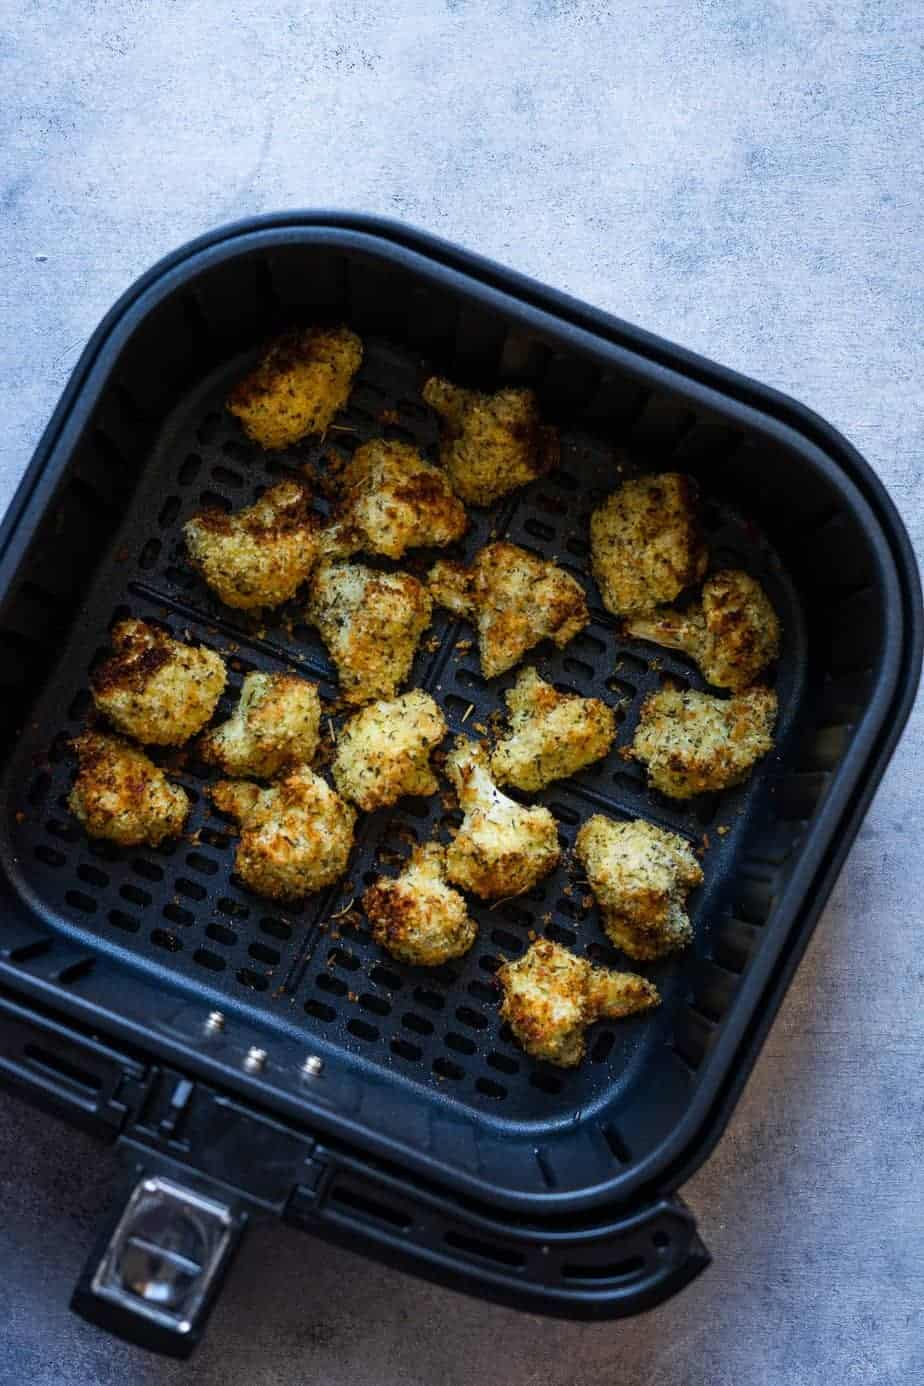 perfectly crispy cauliflower after roasting in the hot air fryer